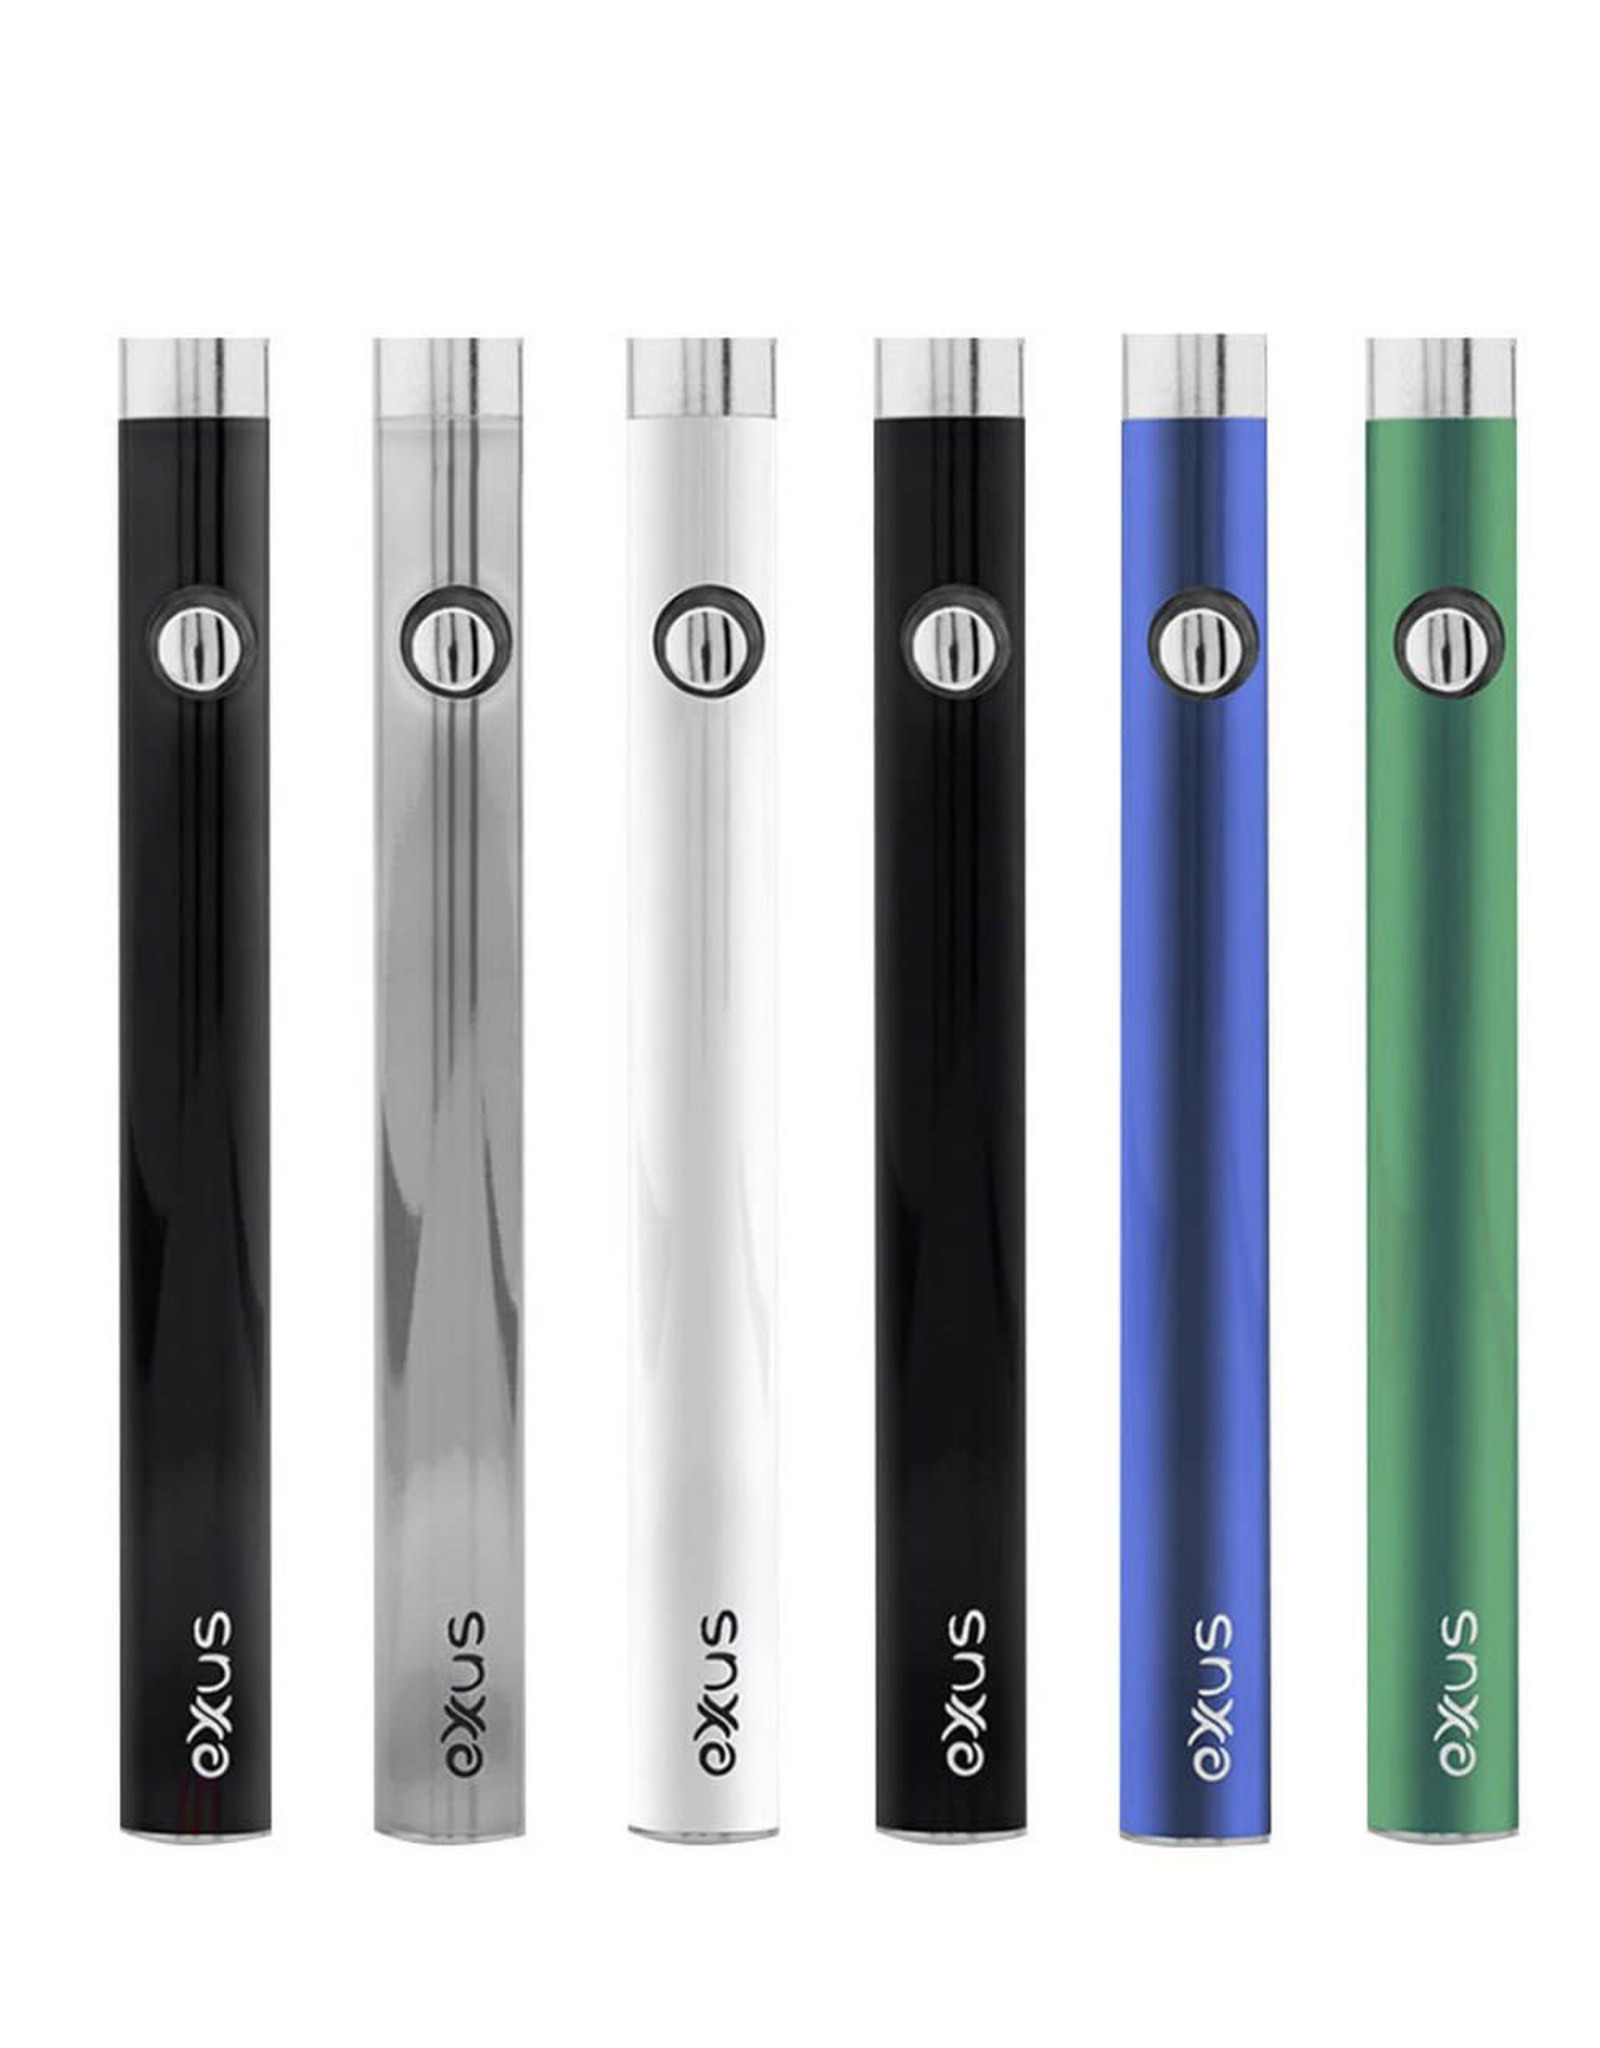 Exxus Slim Variable Voltage Battery for Ccell Cartridges